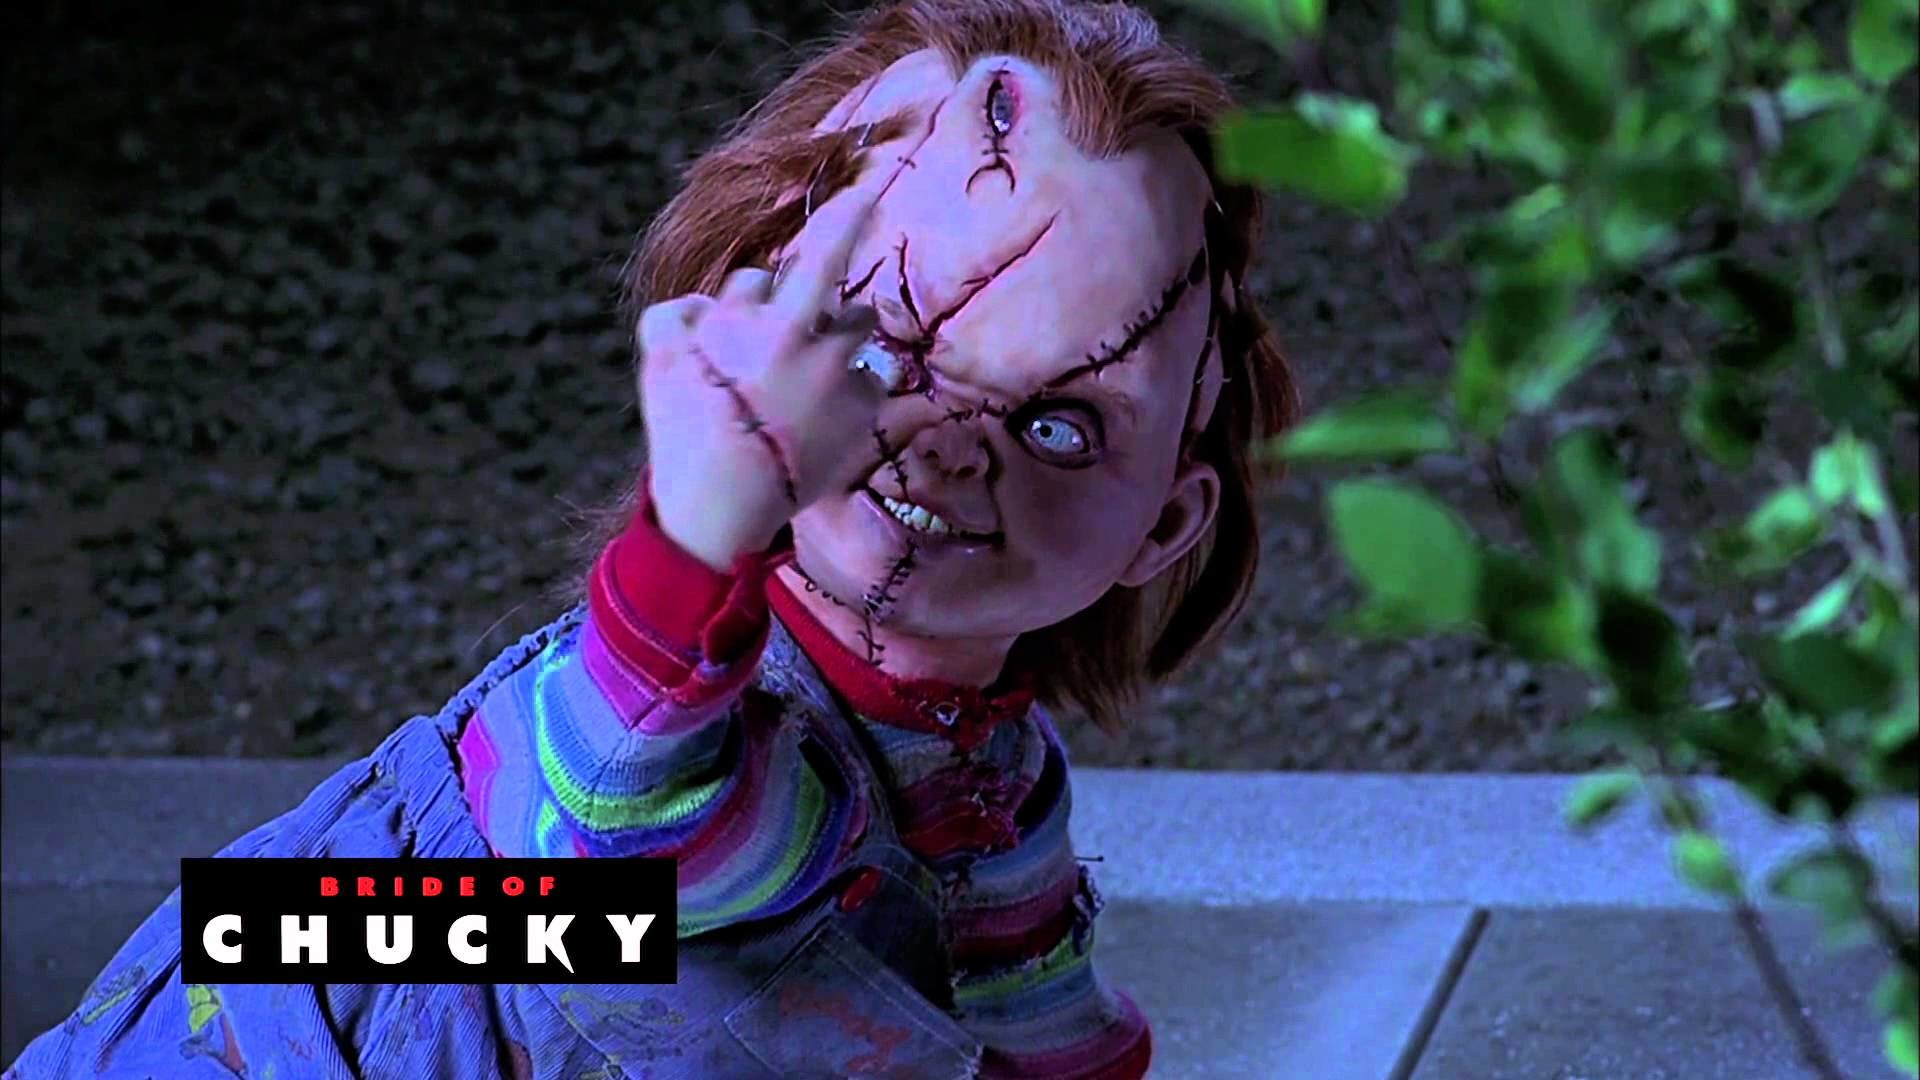 chucky doll wallpaper 80 images